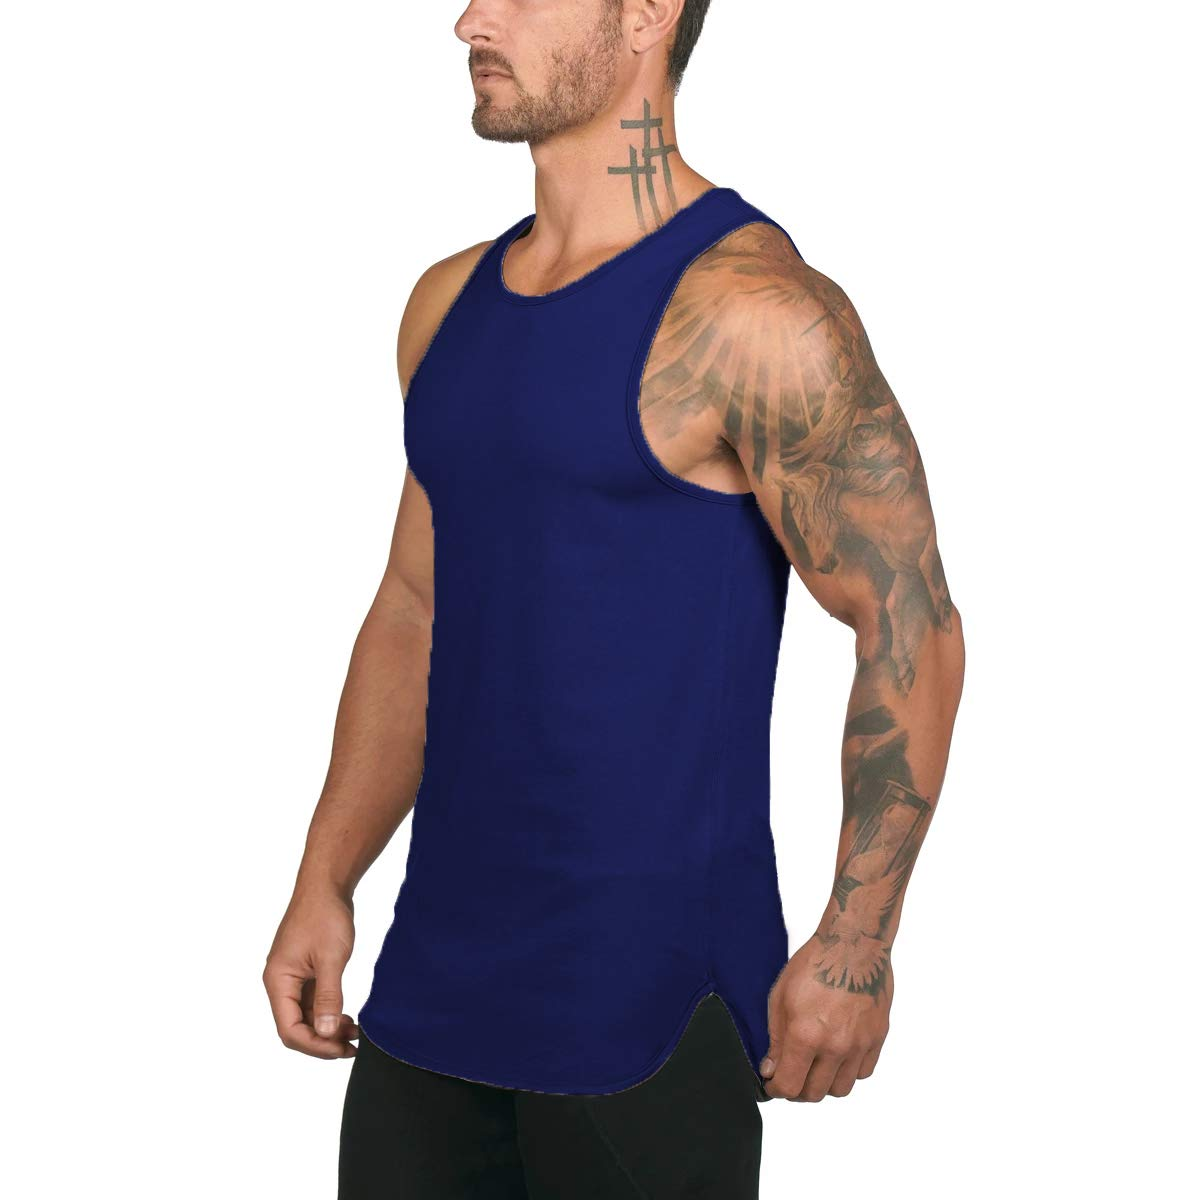 4Clovers Mens Workout Tank Top Sleeveless Muscle Tee Shirt Cotton Gym Training Bodybuilding Vest